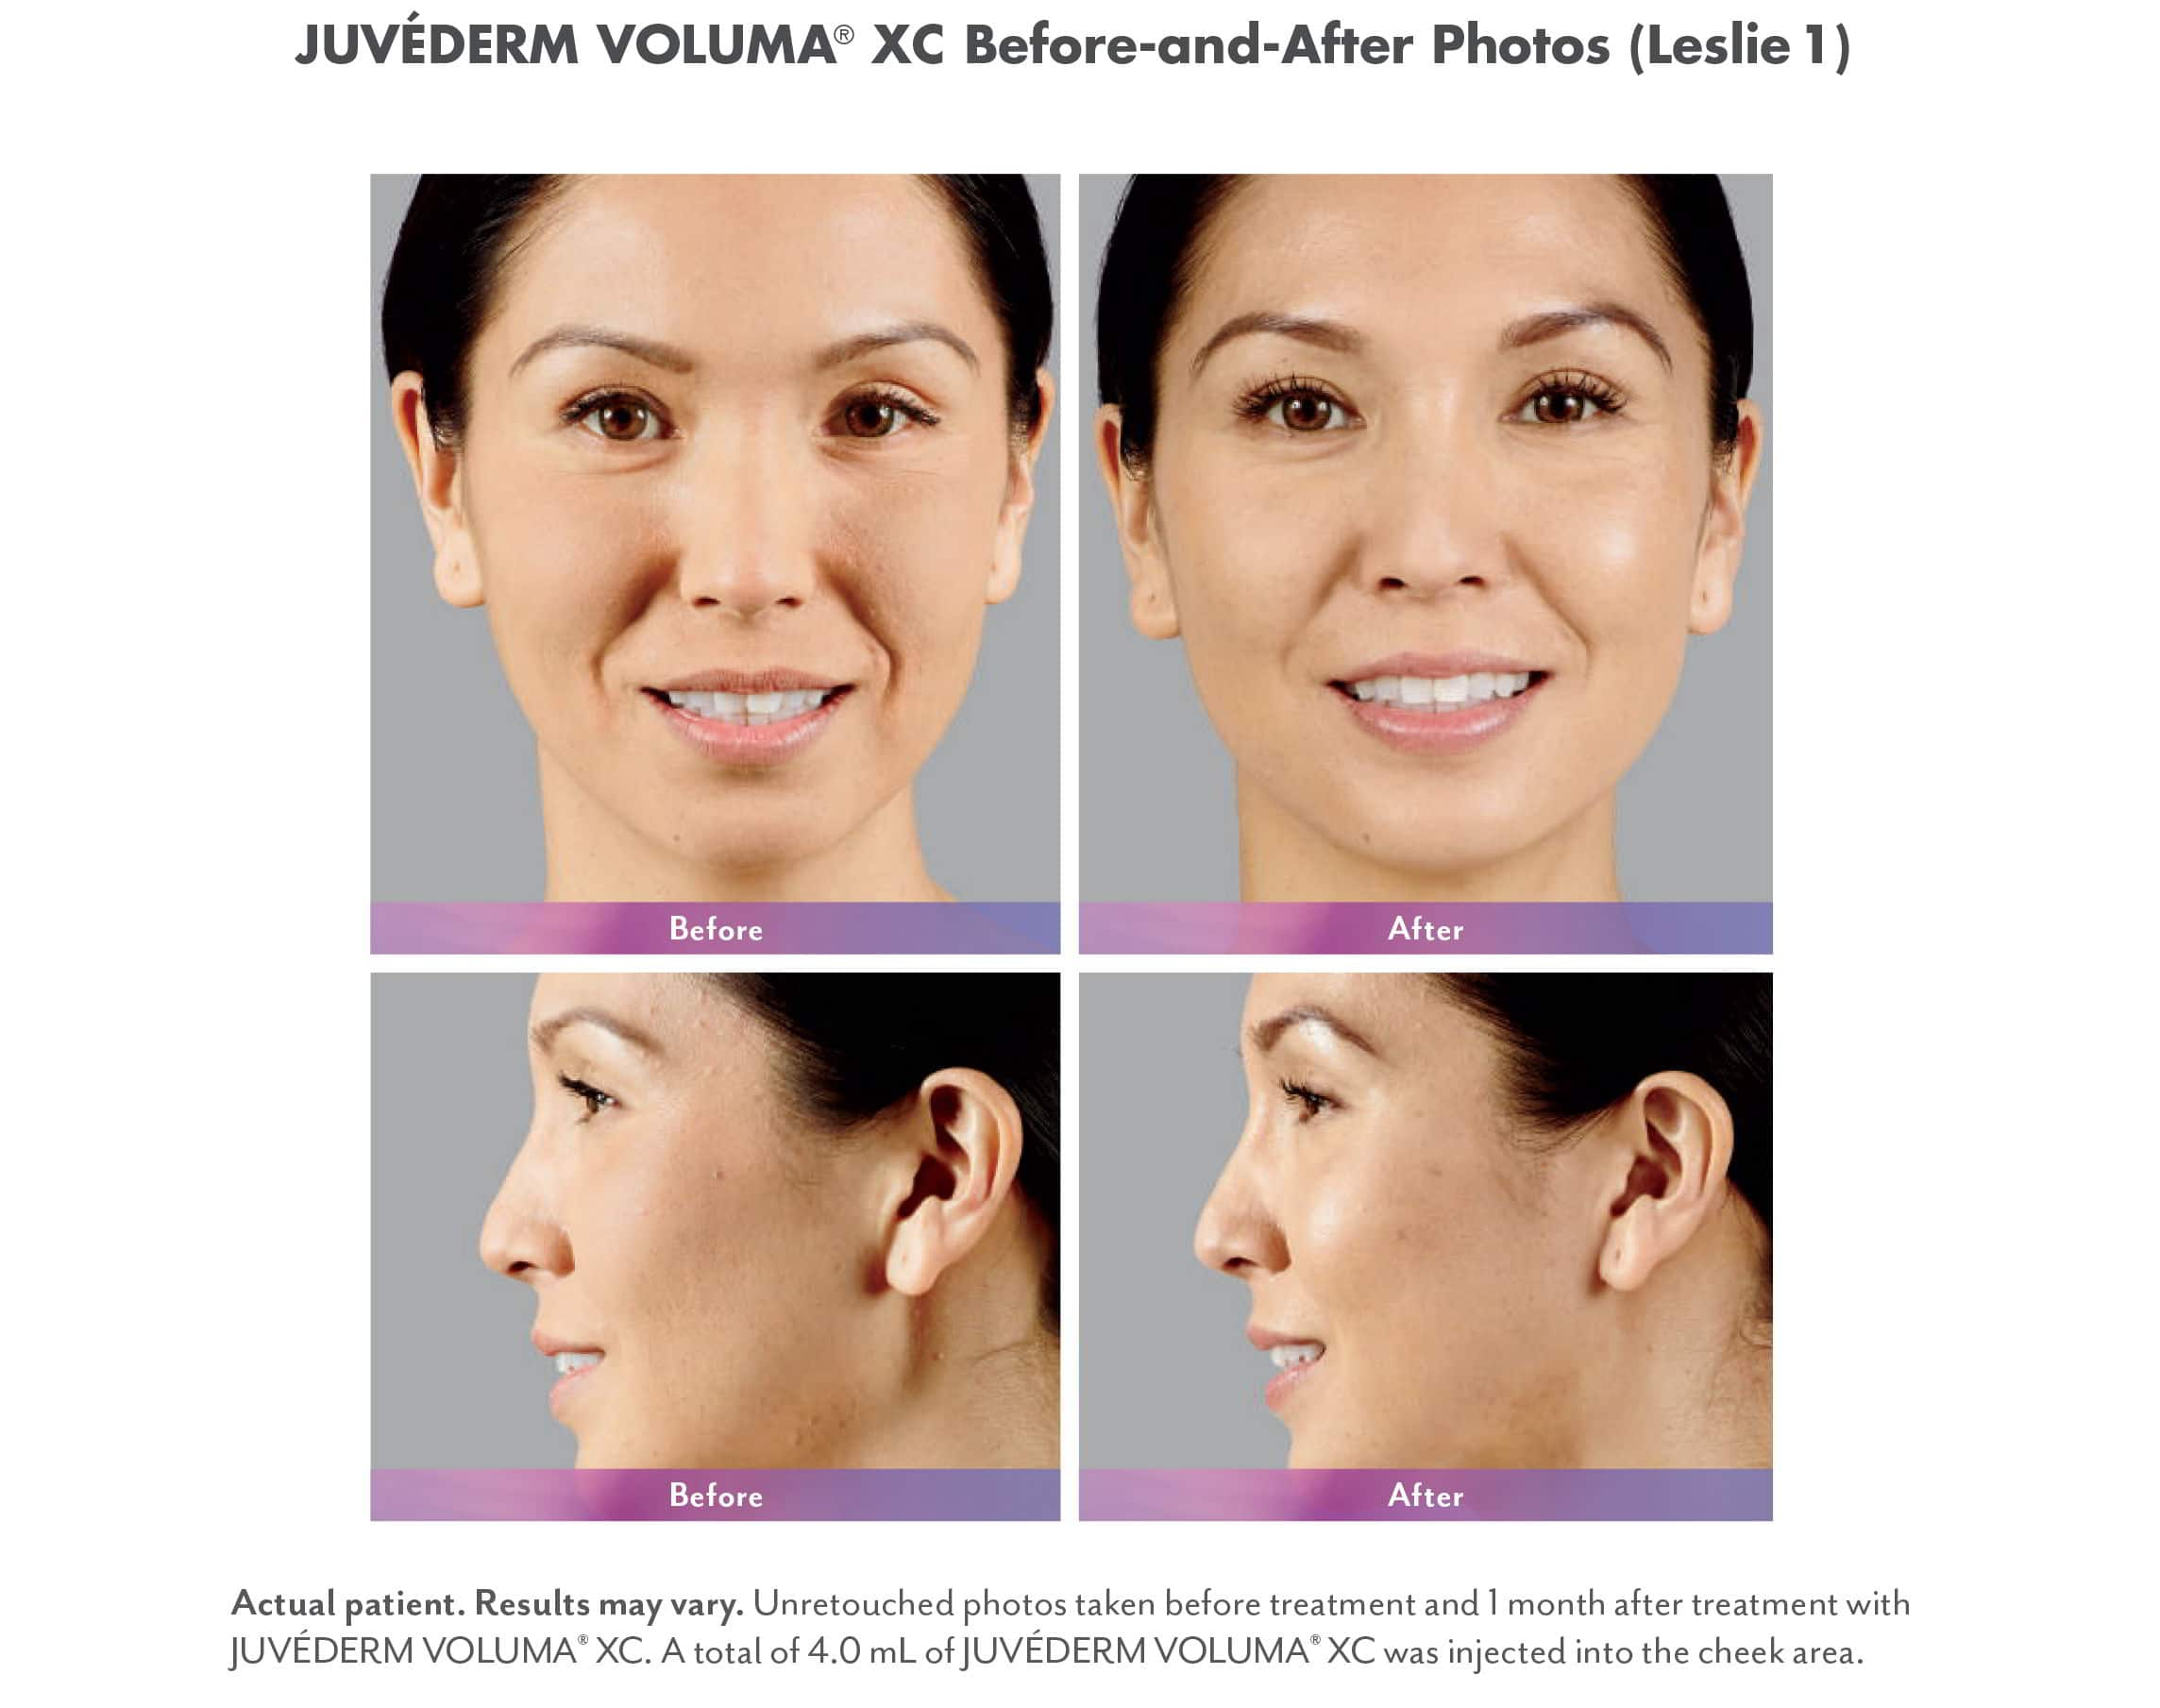 Juvederm Voluma XC Injectable Fillers Before & Afters